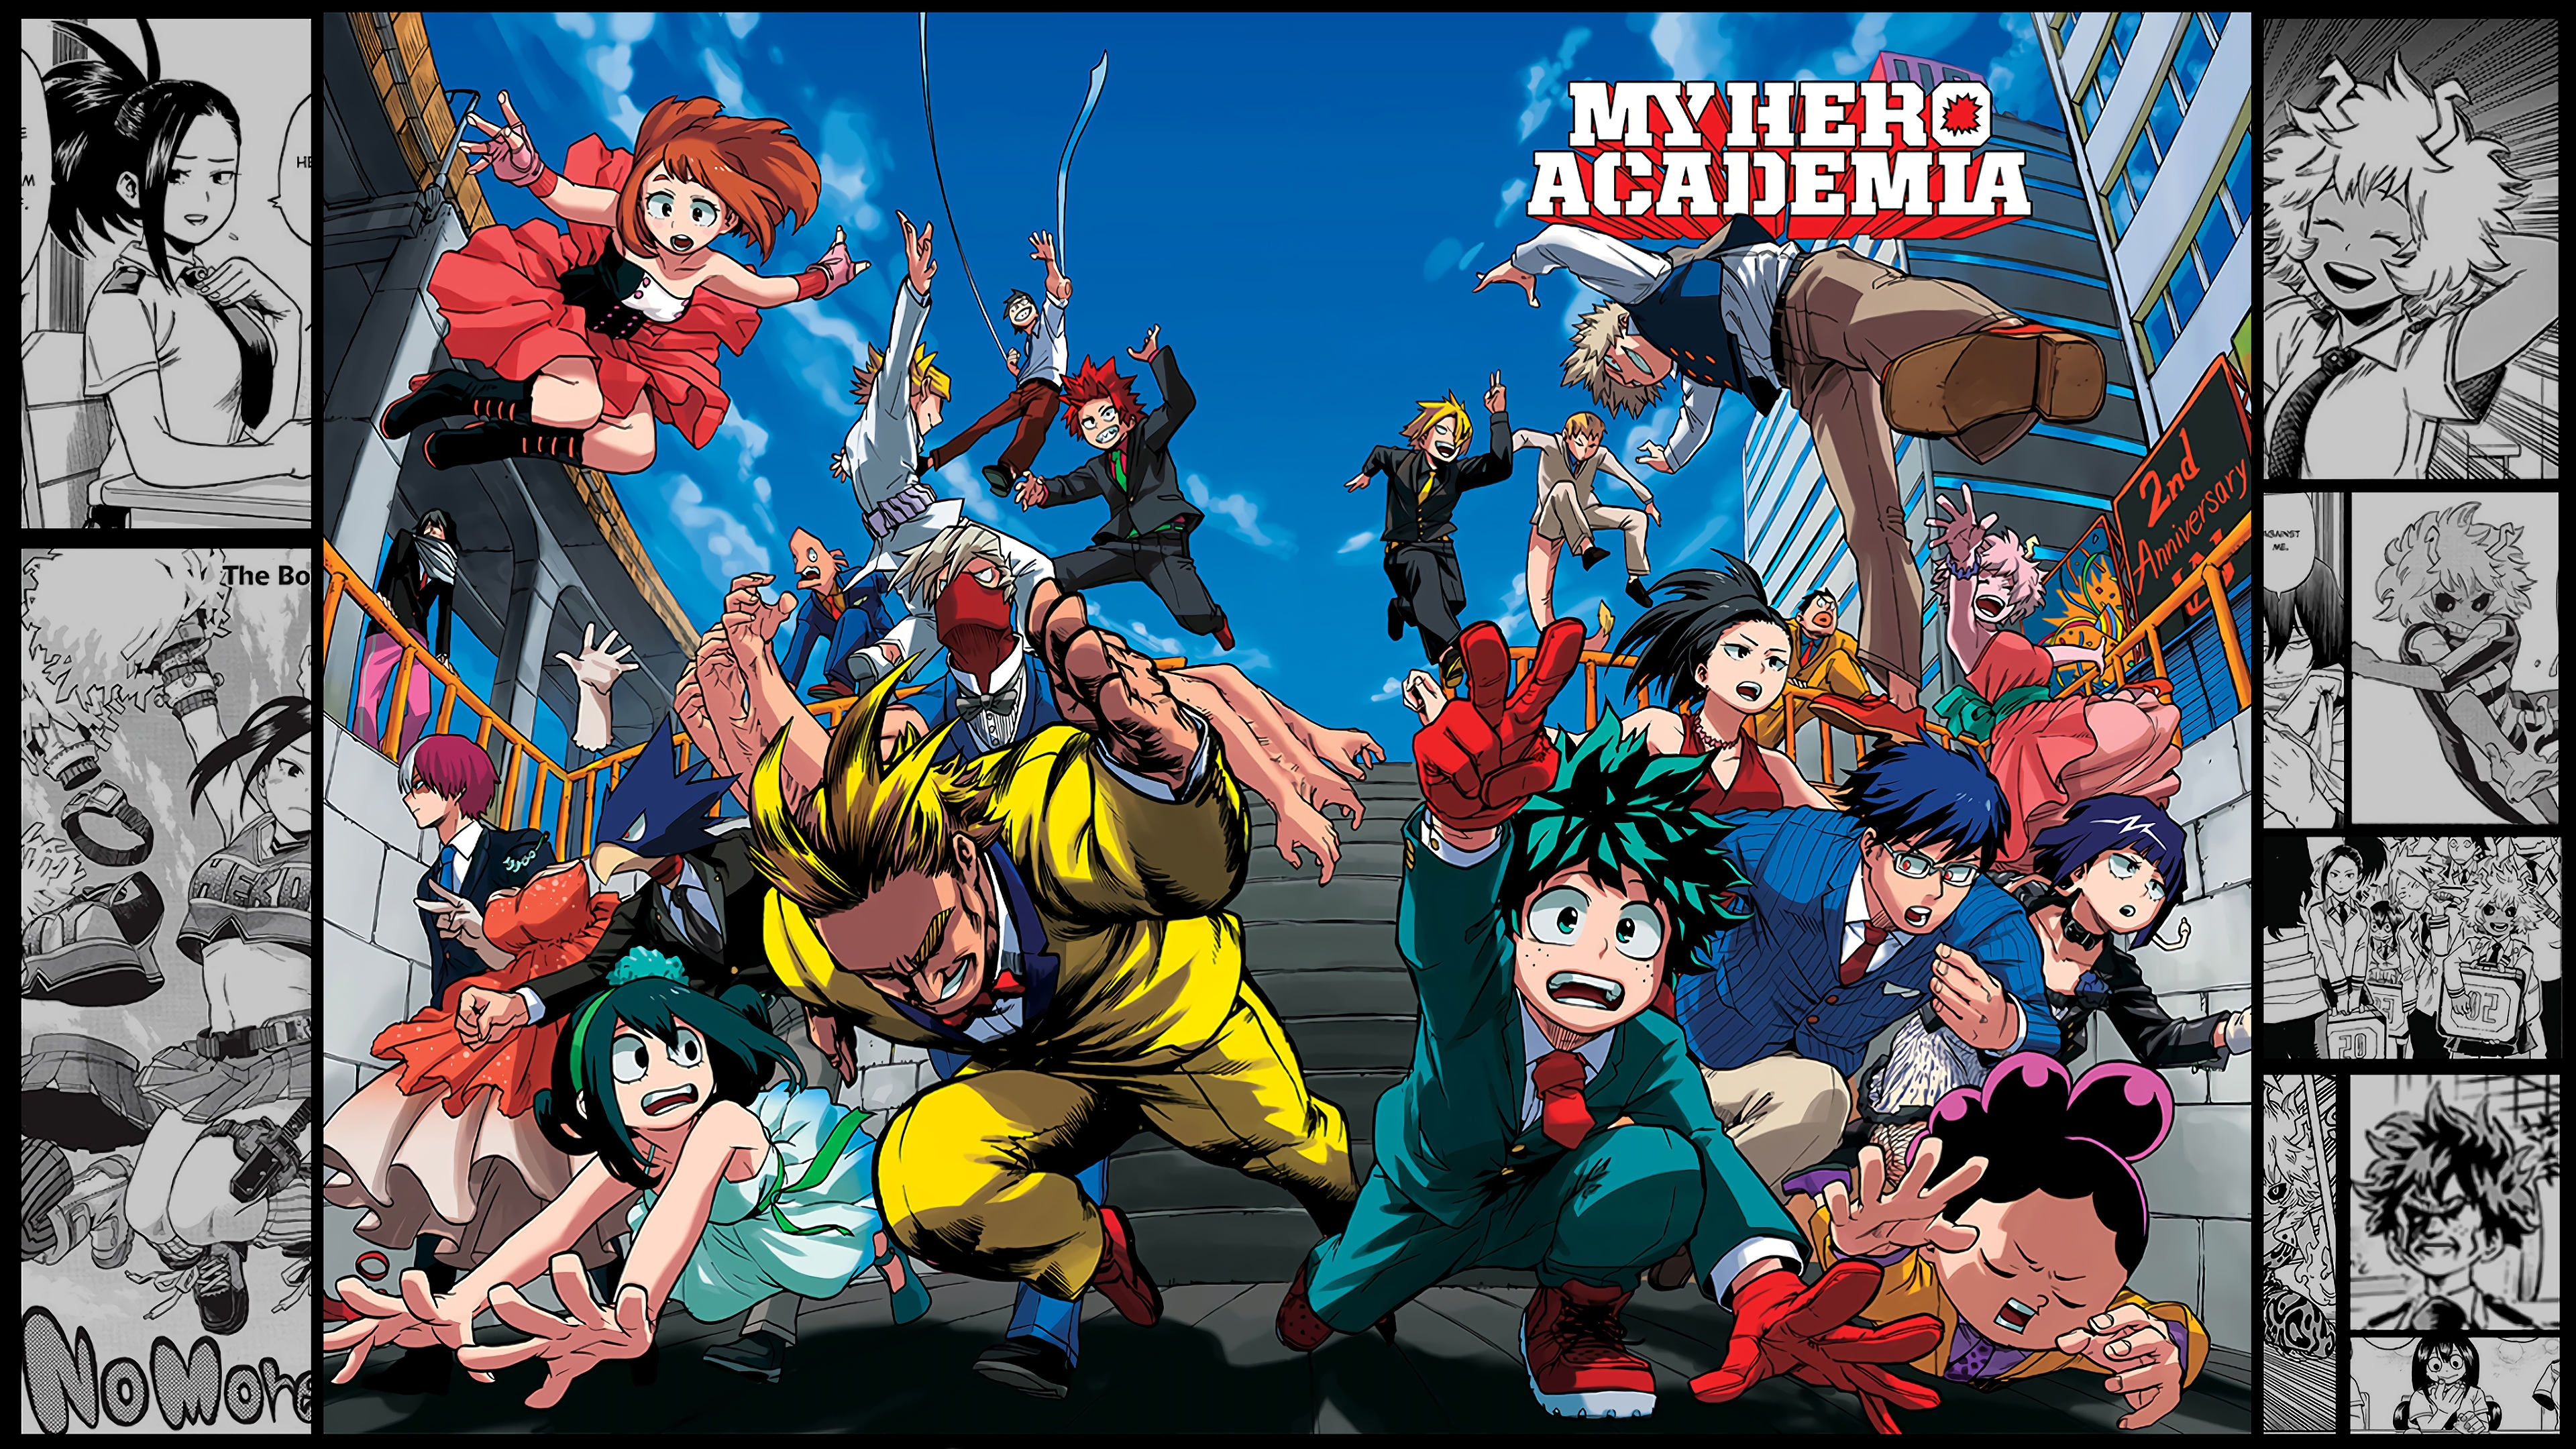 My Hero Academia Characters Cover Anime Wallpaper 4k Ultra Hd Id 3390